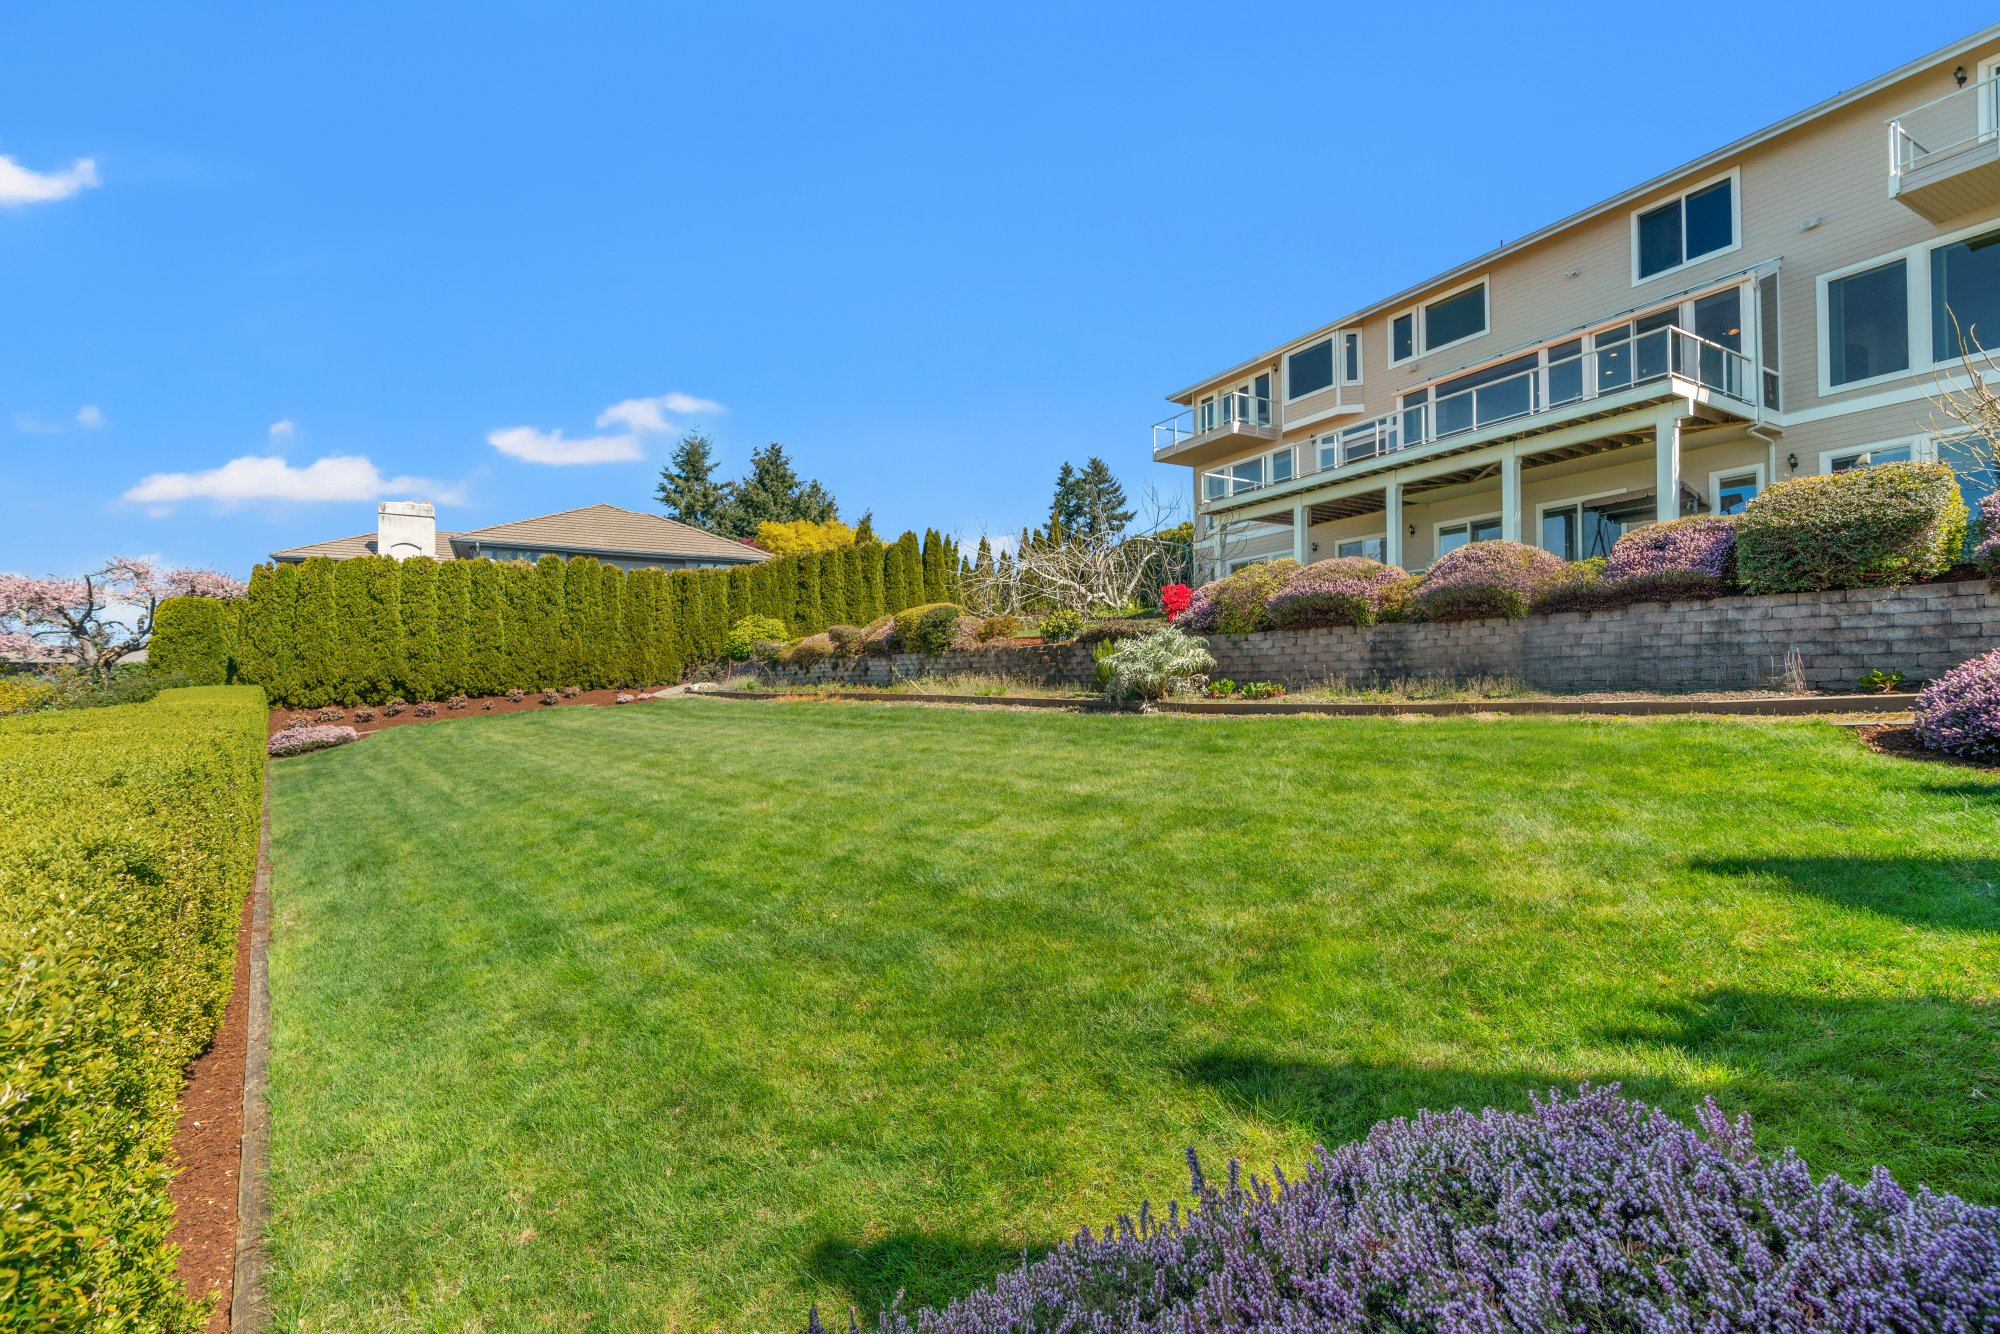 008-1492072ndAvenueWest-Edmonds-WA-98026-SMALL